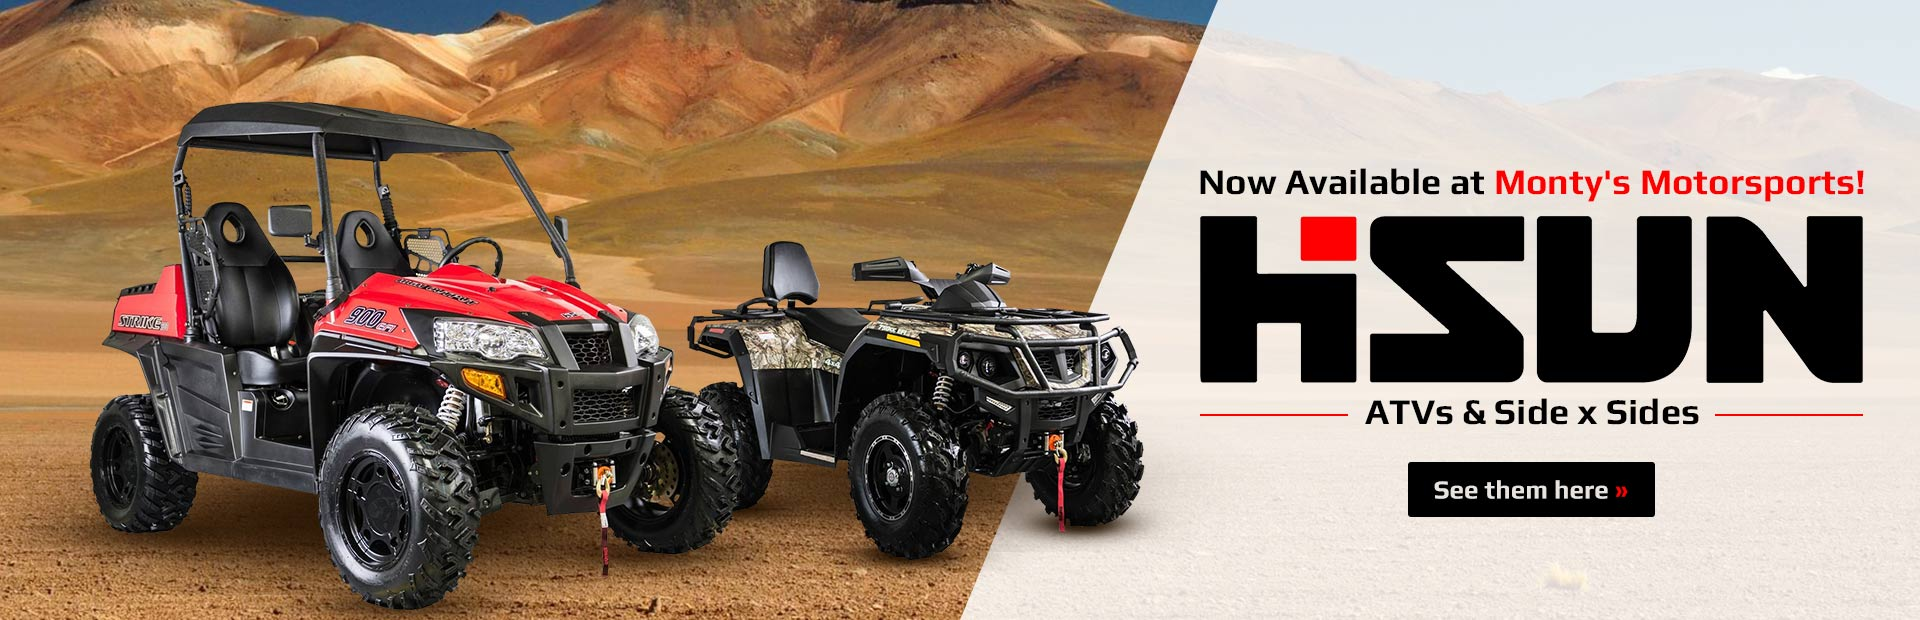 Hisun ATVs and side x sides are now available at Monty's Motorsports!